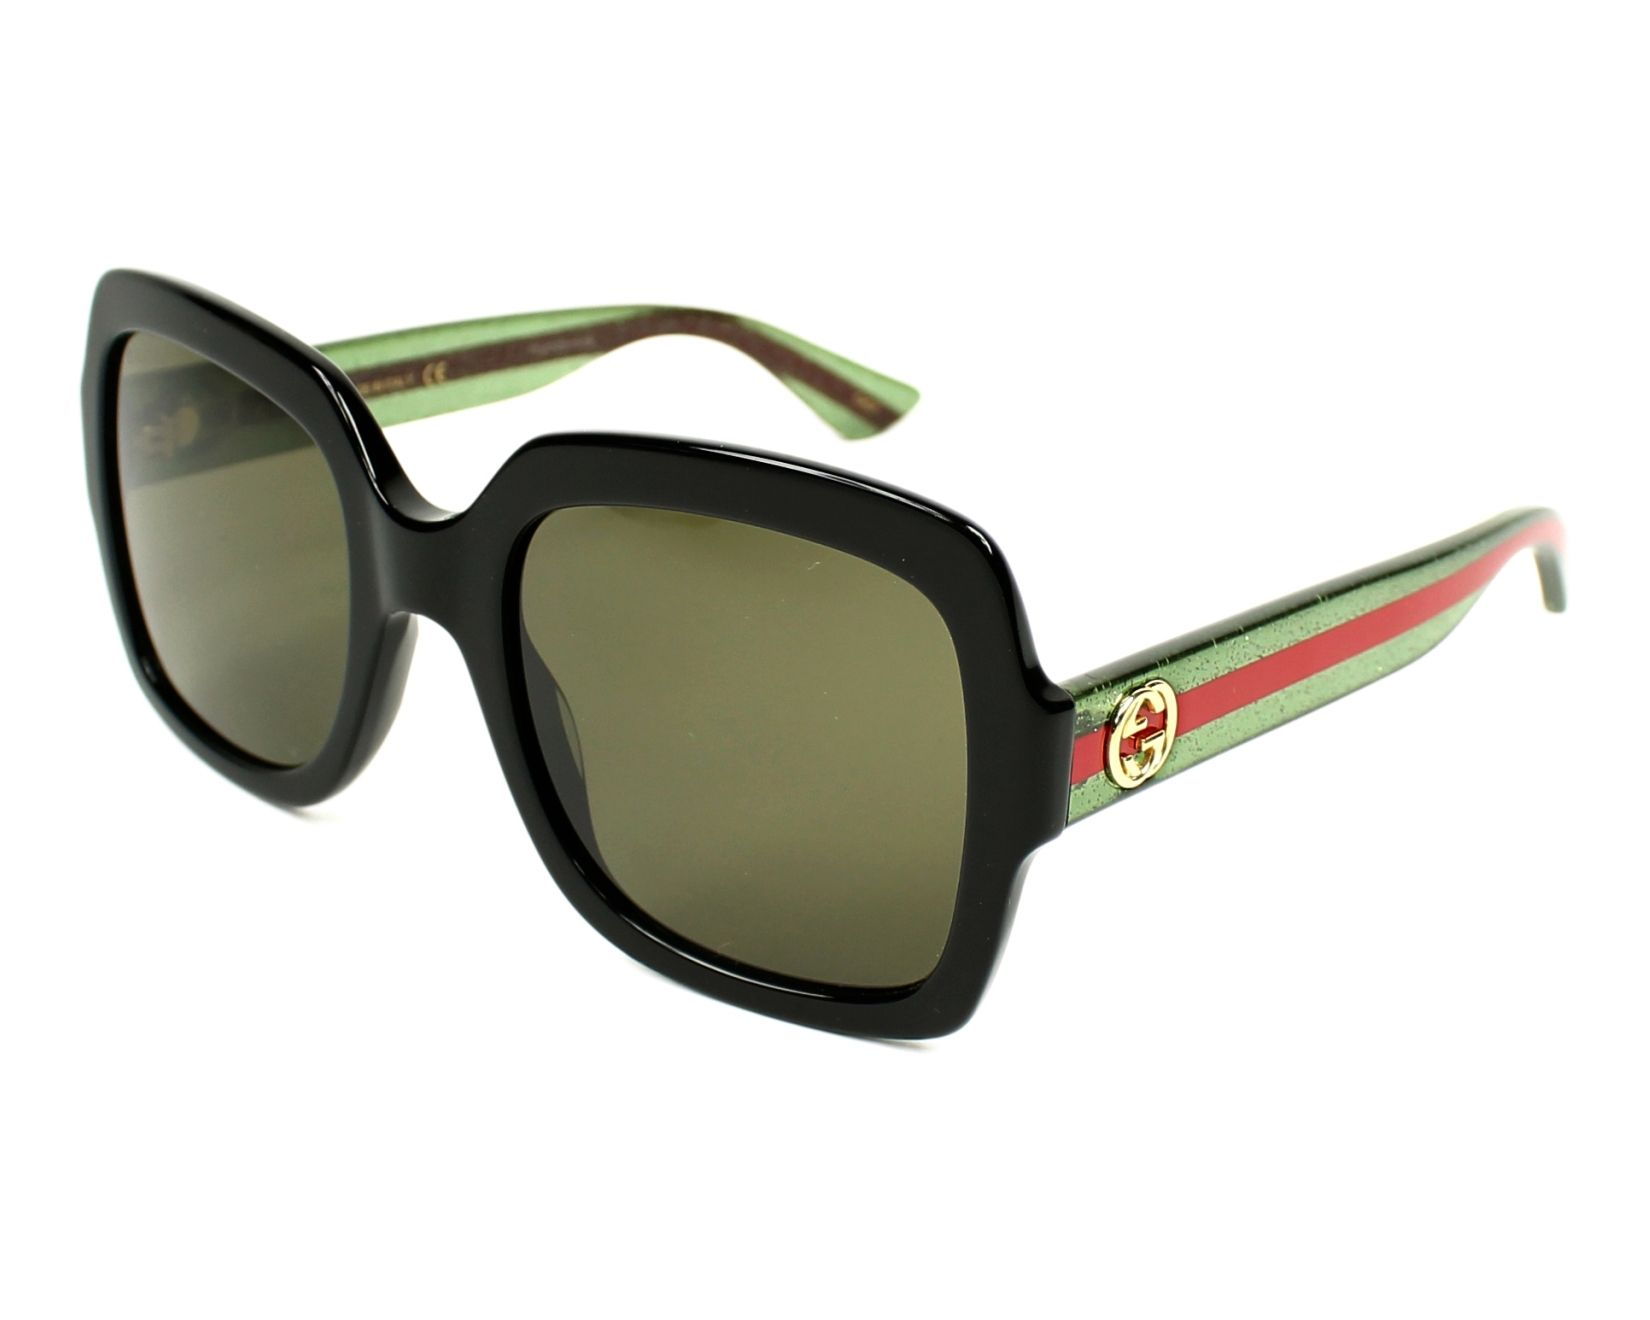 1278b576b85 Gucci Sunglasses GG-0036-S 002 54-22 Black Green